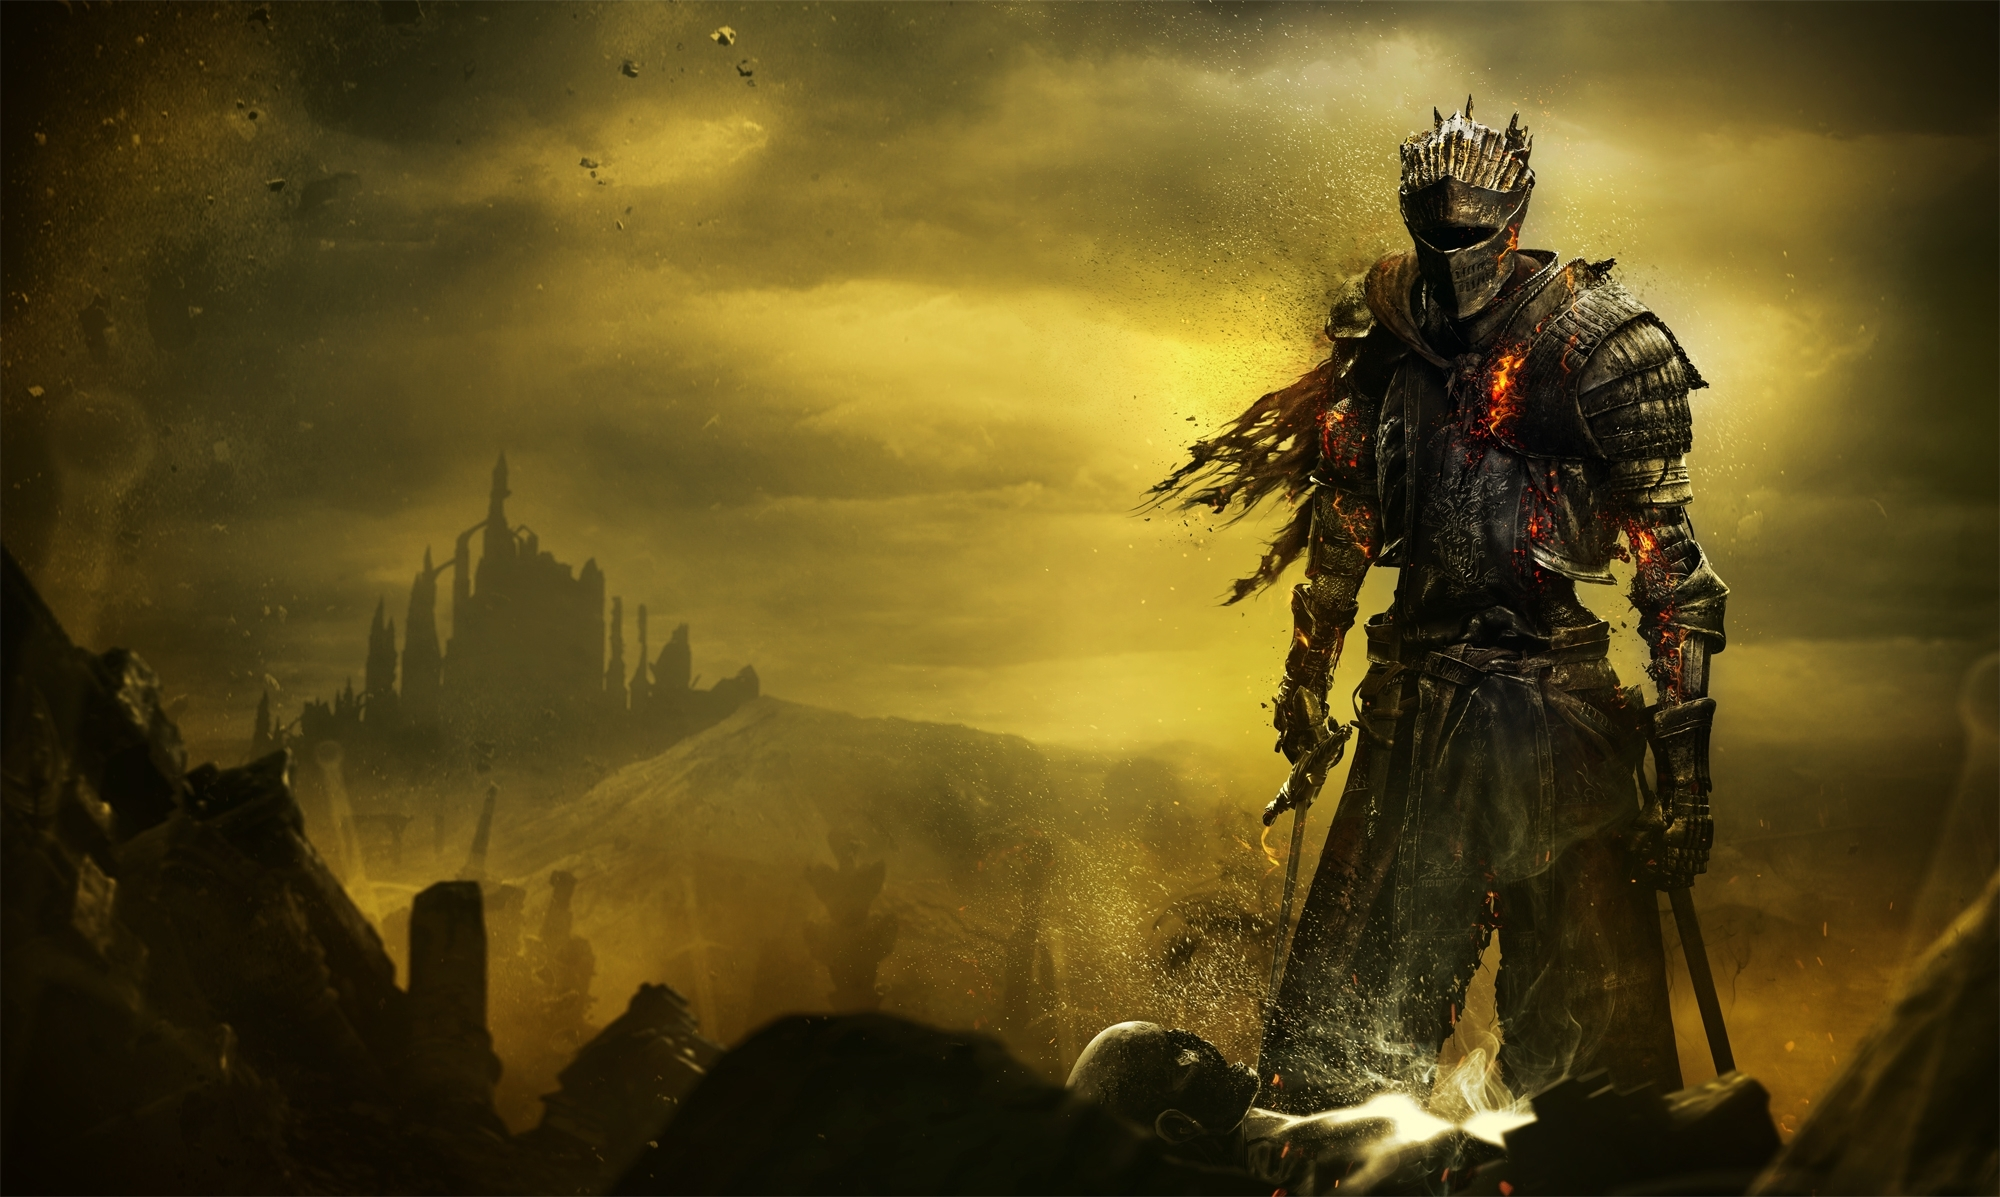 wallpaper dark souls iii, soul of cinder, hd, games, #1670